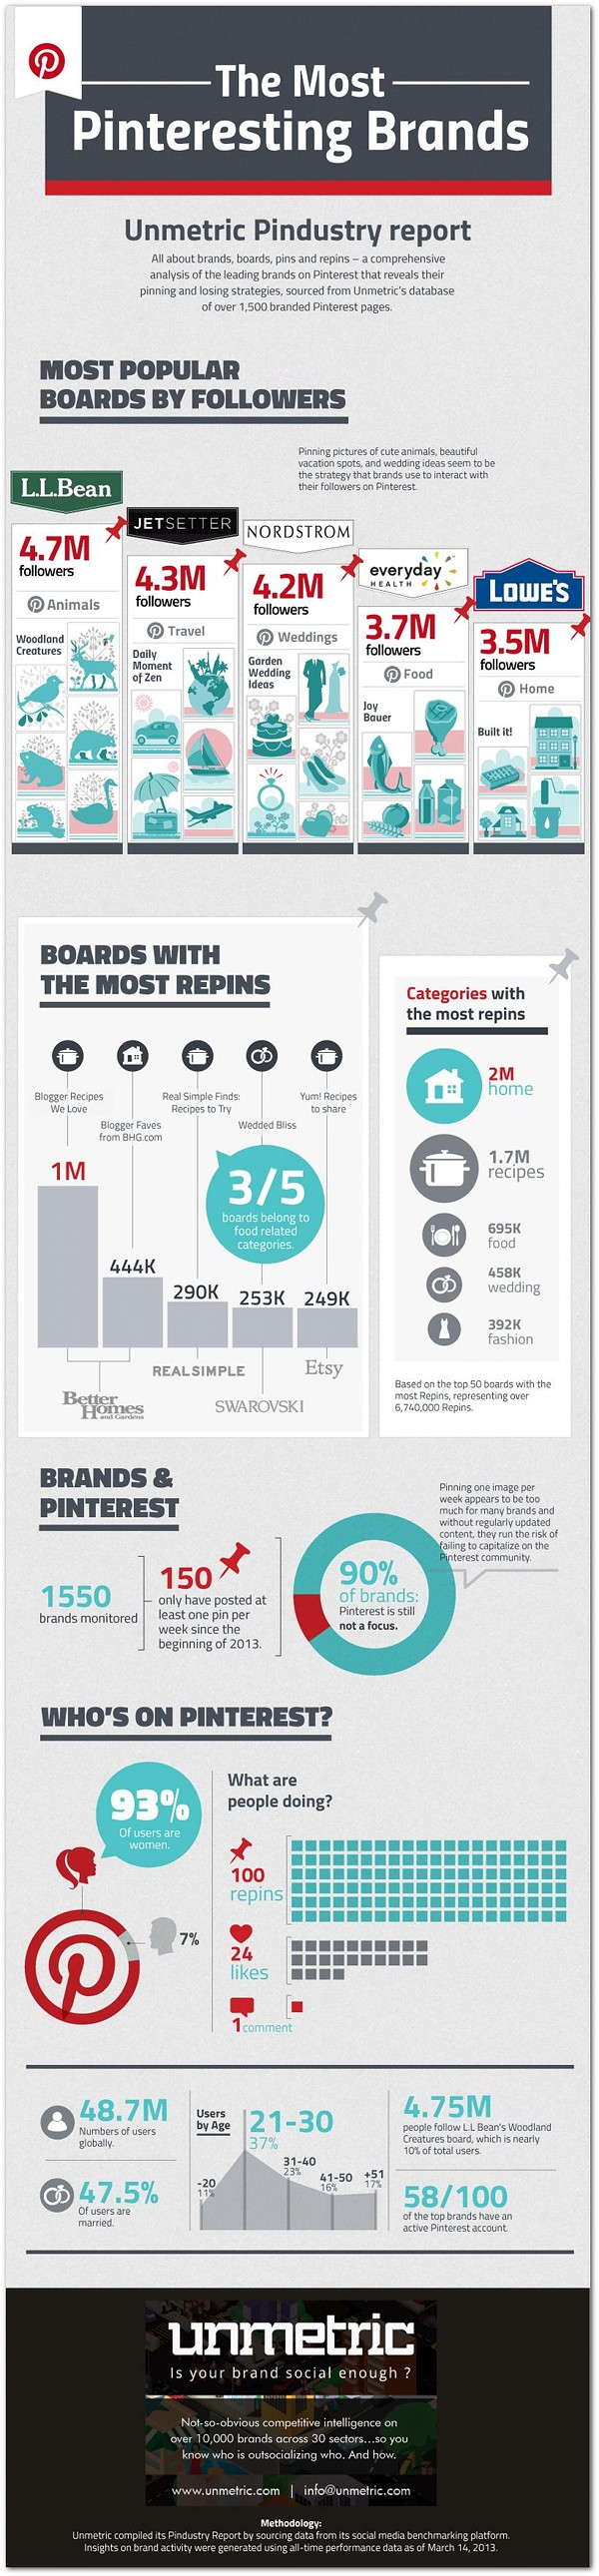 #Pinterest's most popular #branded boards | Articles | Social Media, Infographic from unmetric.com via prdaily.com